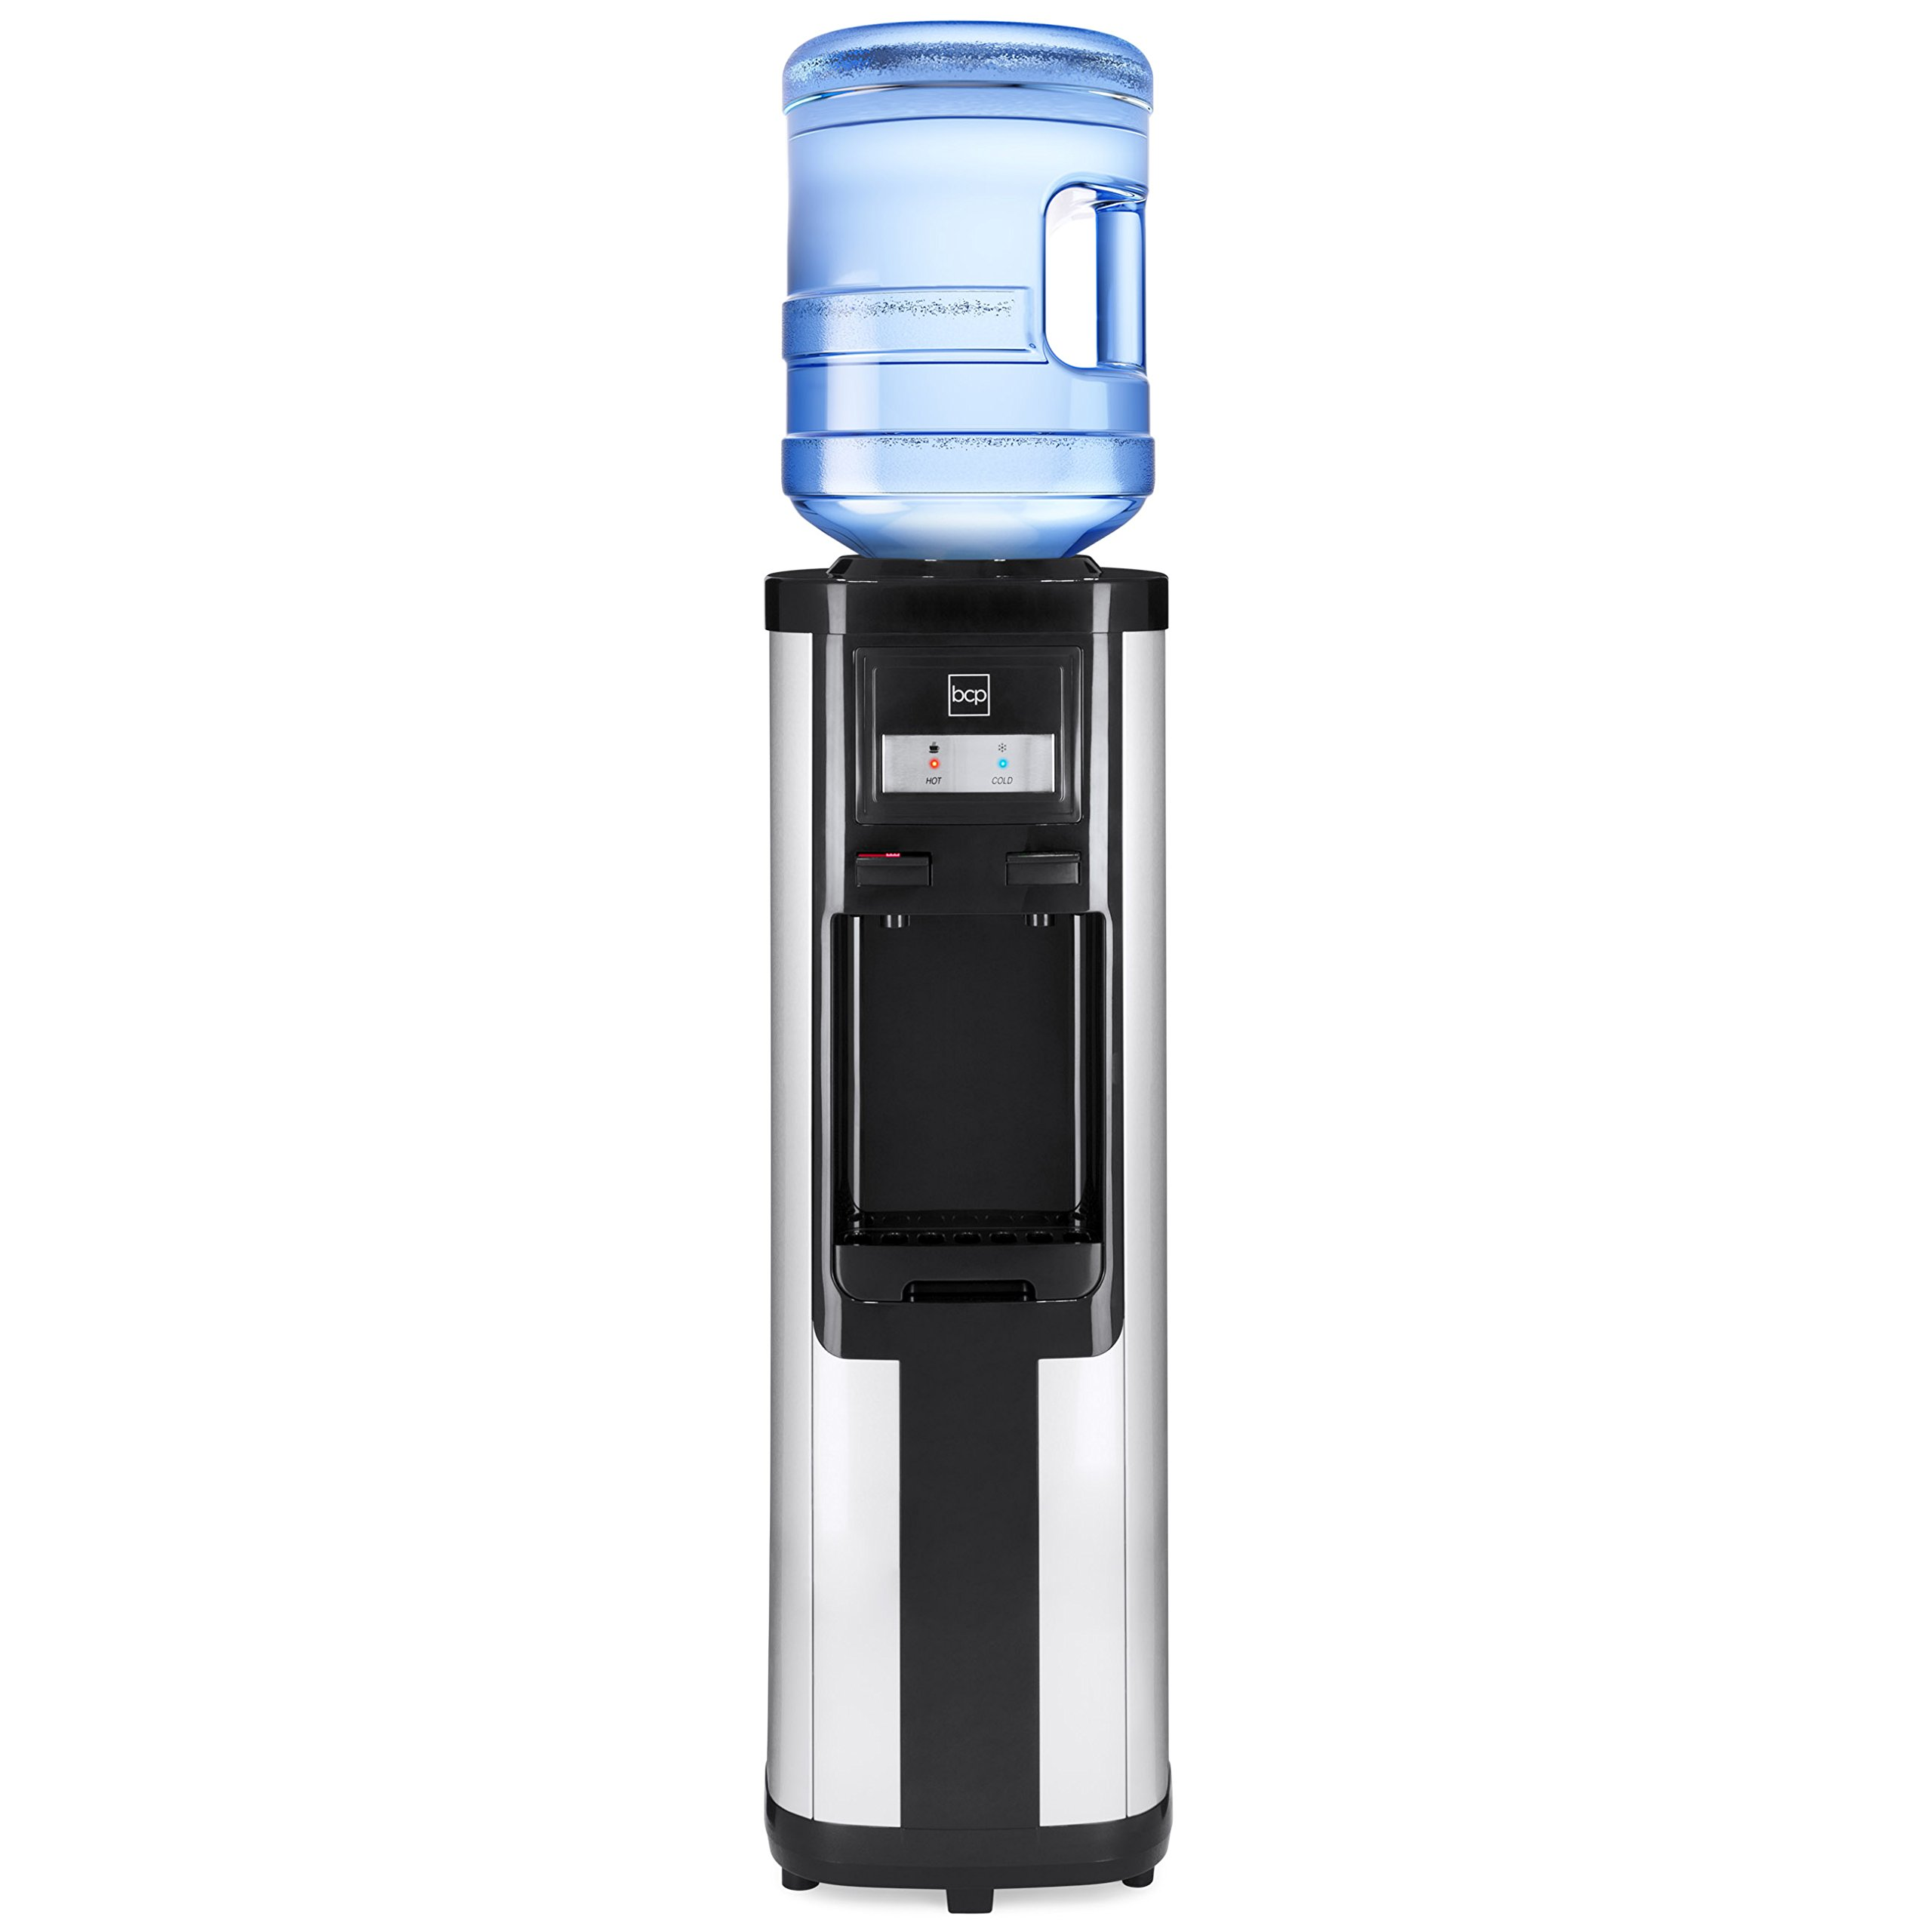 Best Choice Products 5-Gallon Freestanding Stainless Steel Top Loading Hot and Cold Water Dispenser - Silver/Black